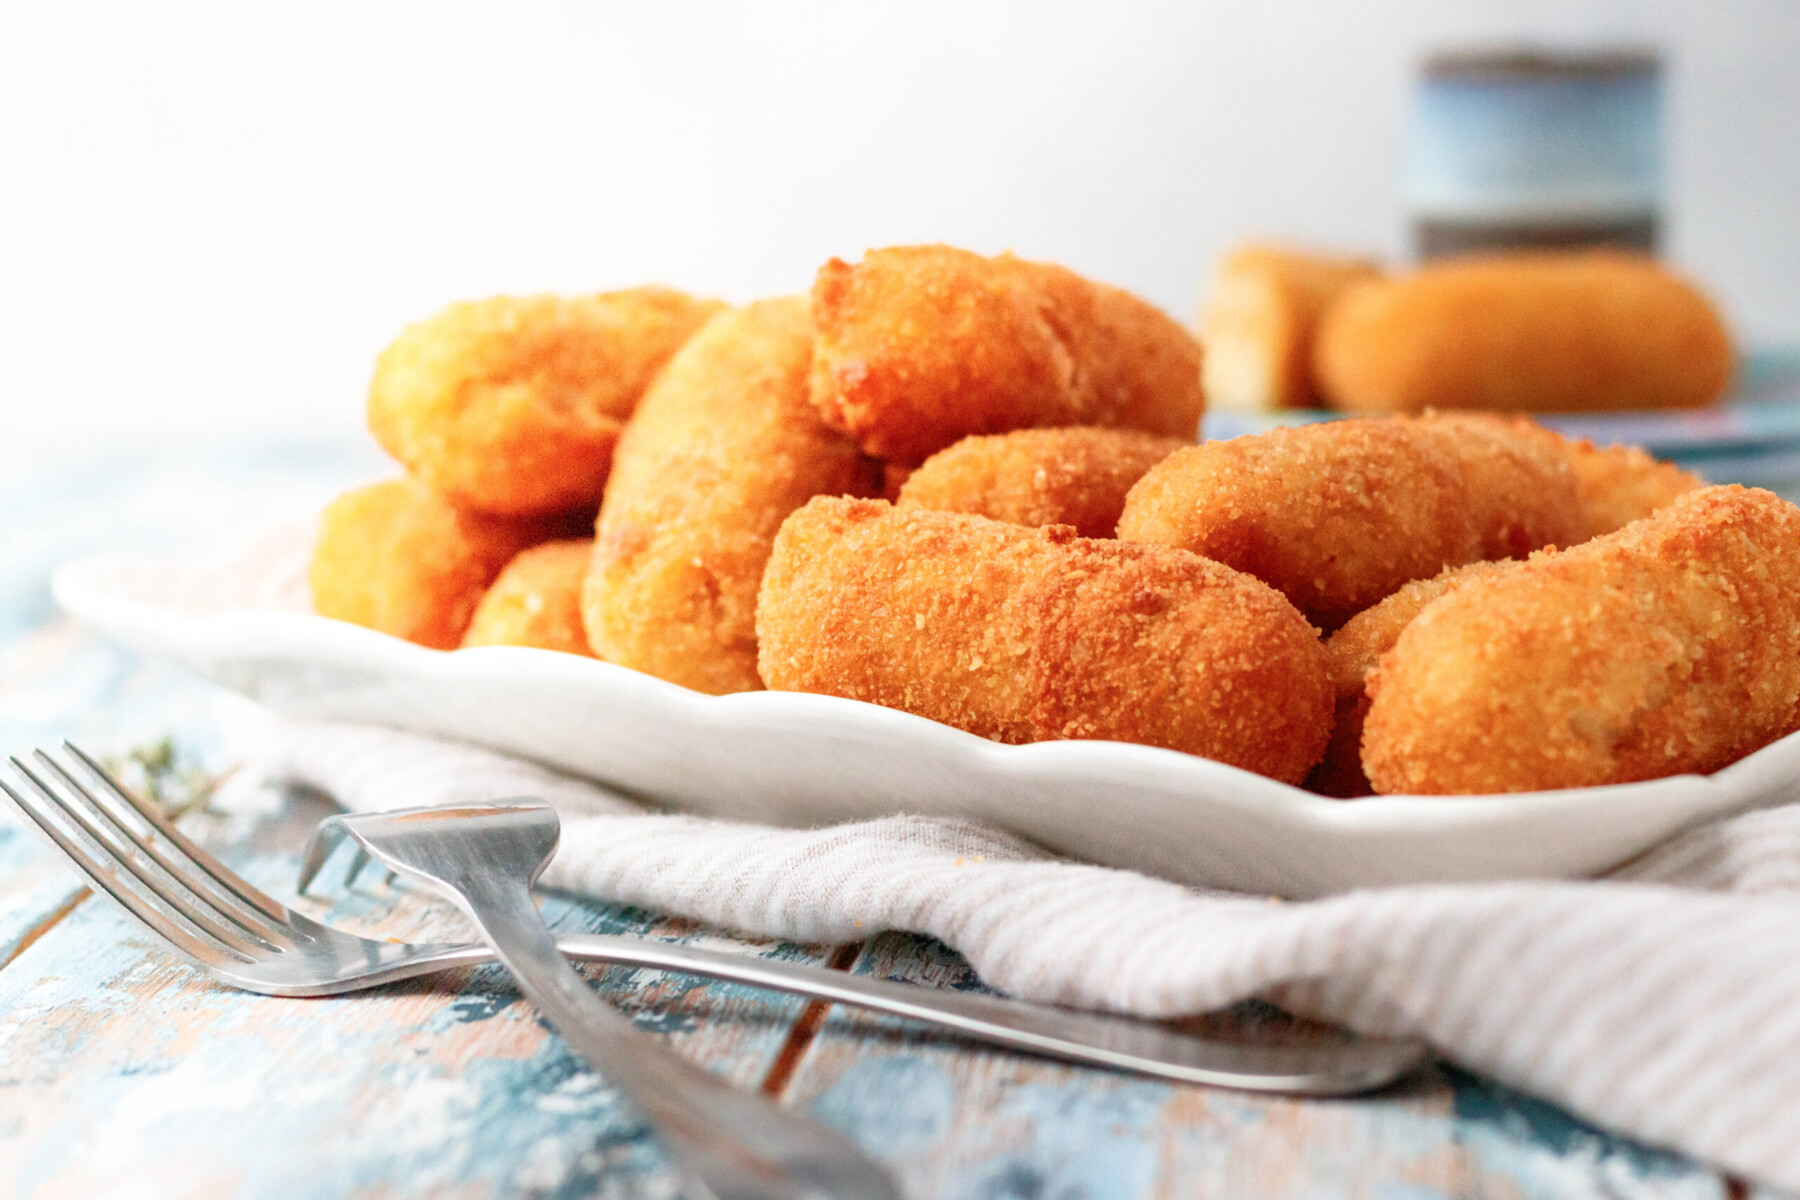 chicken croquettes piles on a white rectangle serving plate ready to enjoy!